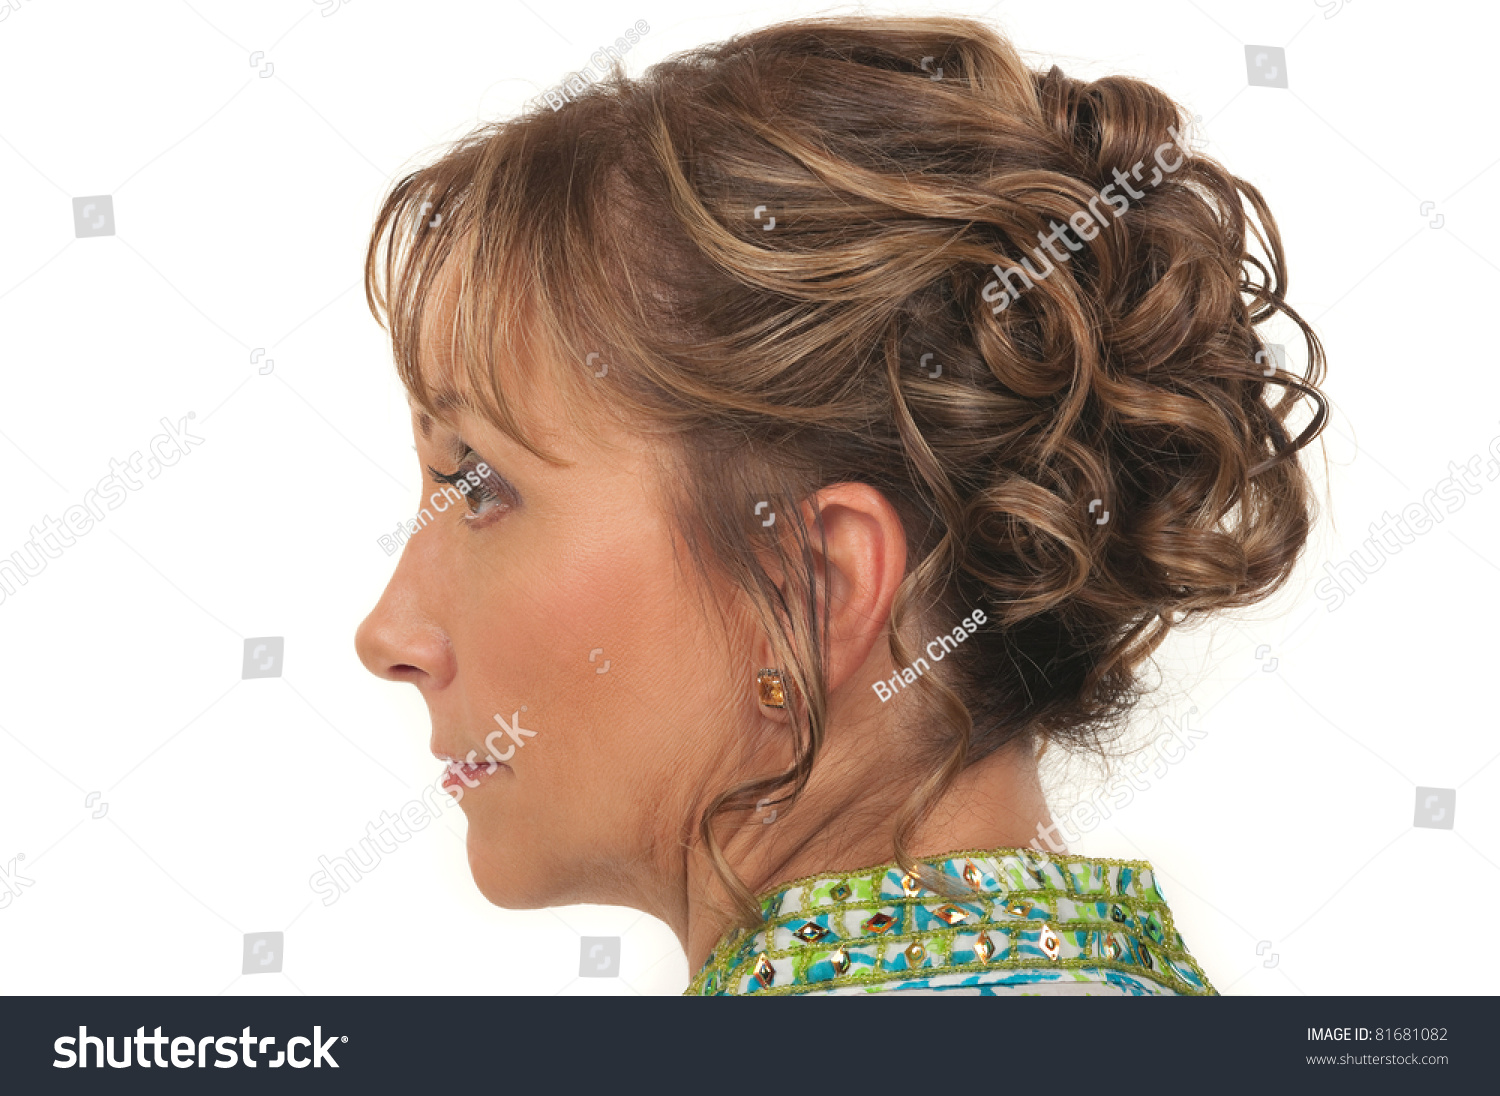 Beautiful Hairstyles For A Party : Beautiful hairstyle for a party or wedding older women